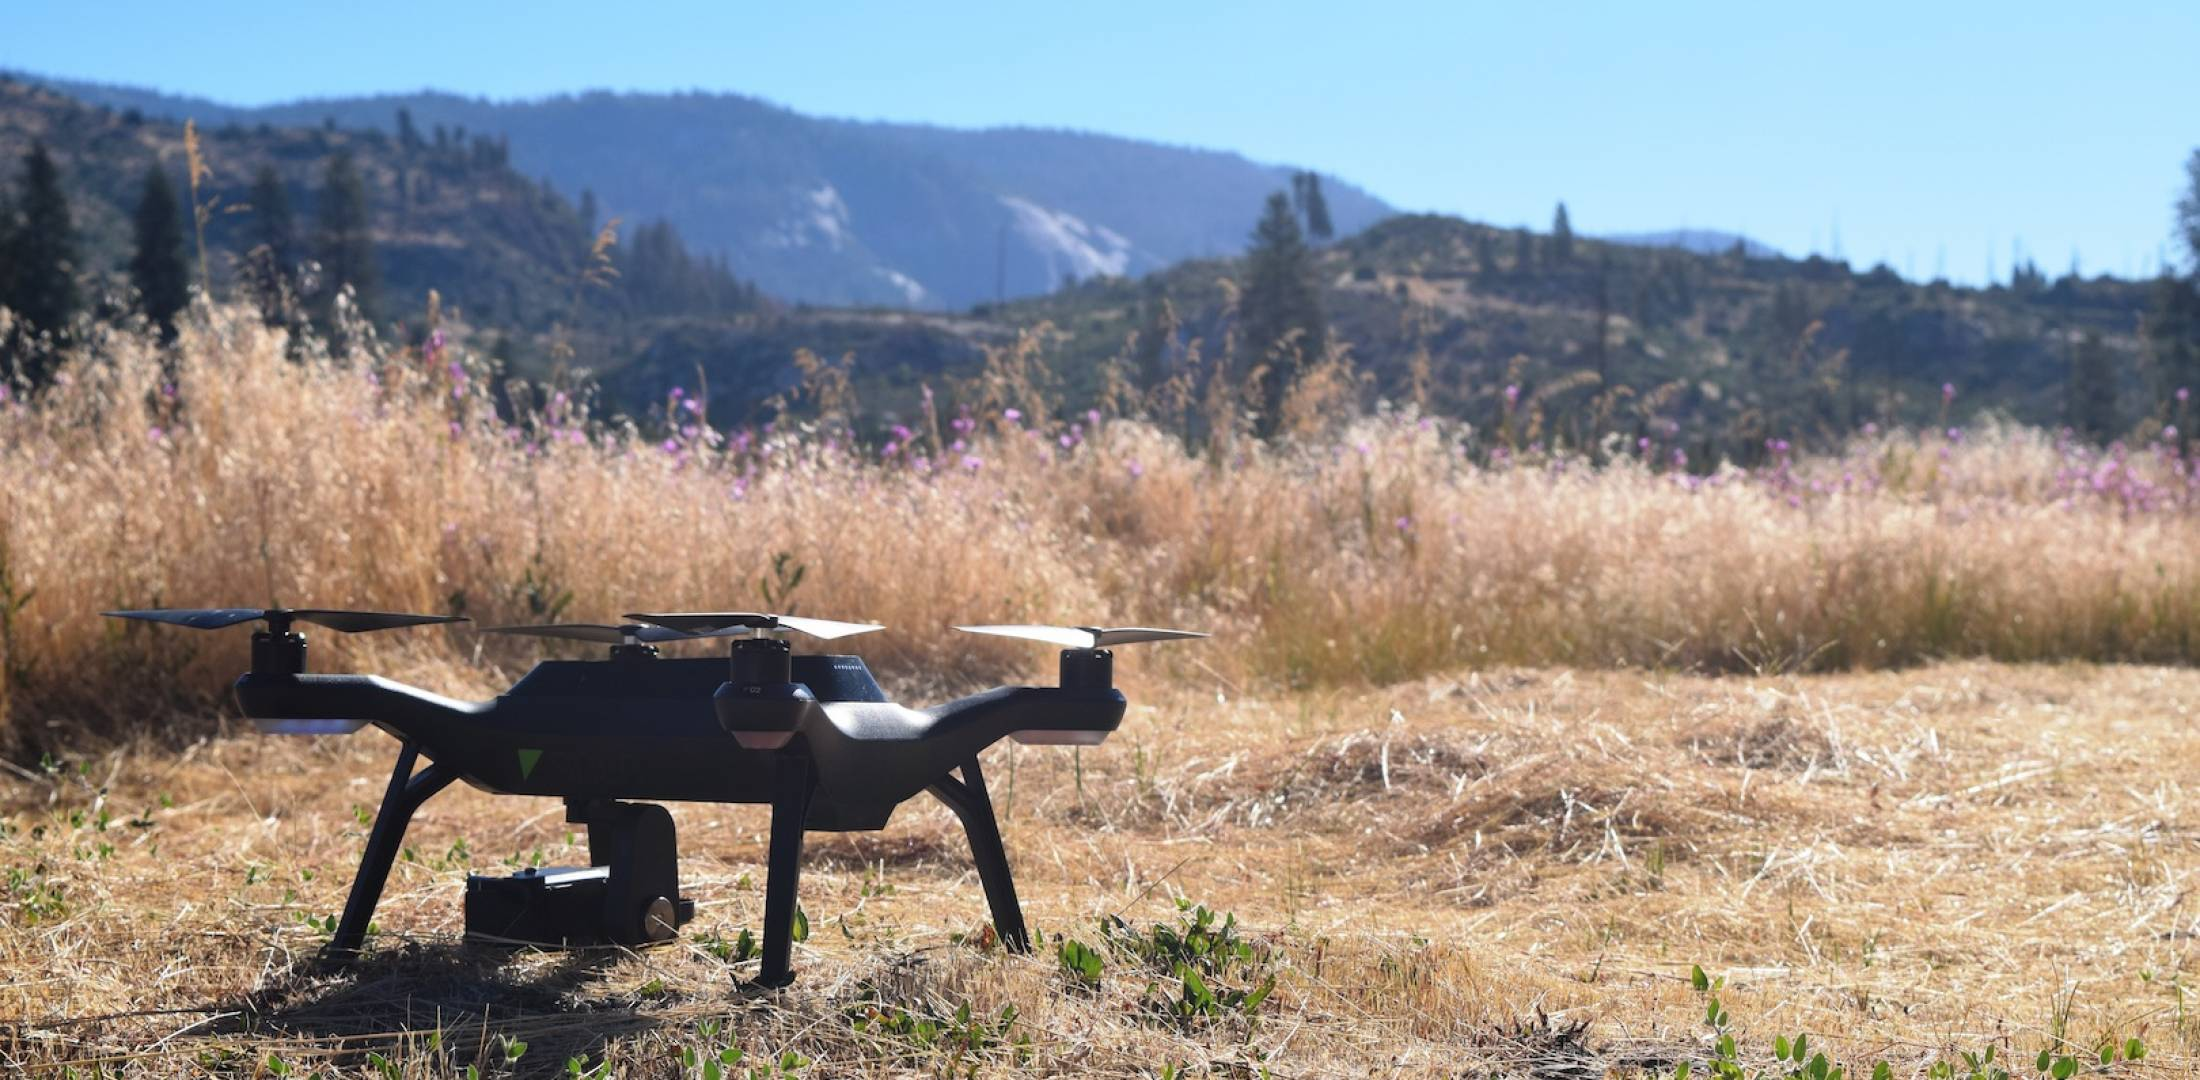 The 3D Robotics Solo Quadcopter Is Shown At Yosemite National Park In  California. (Photo Courtesy U.S. Department Of The Interior)